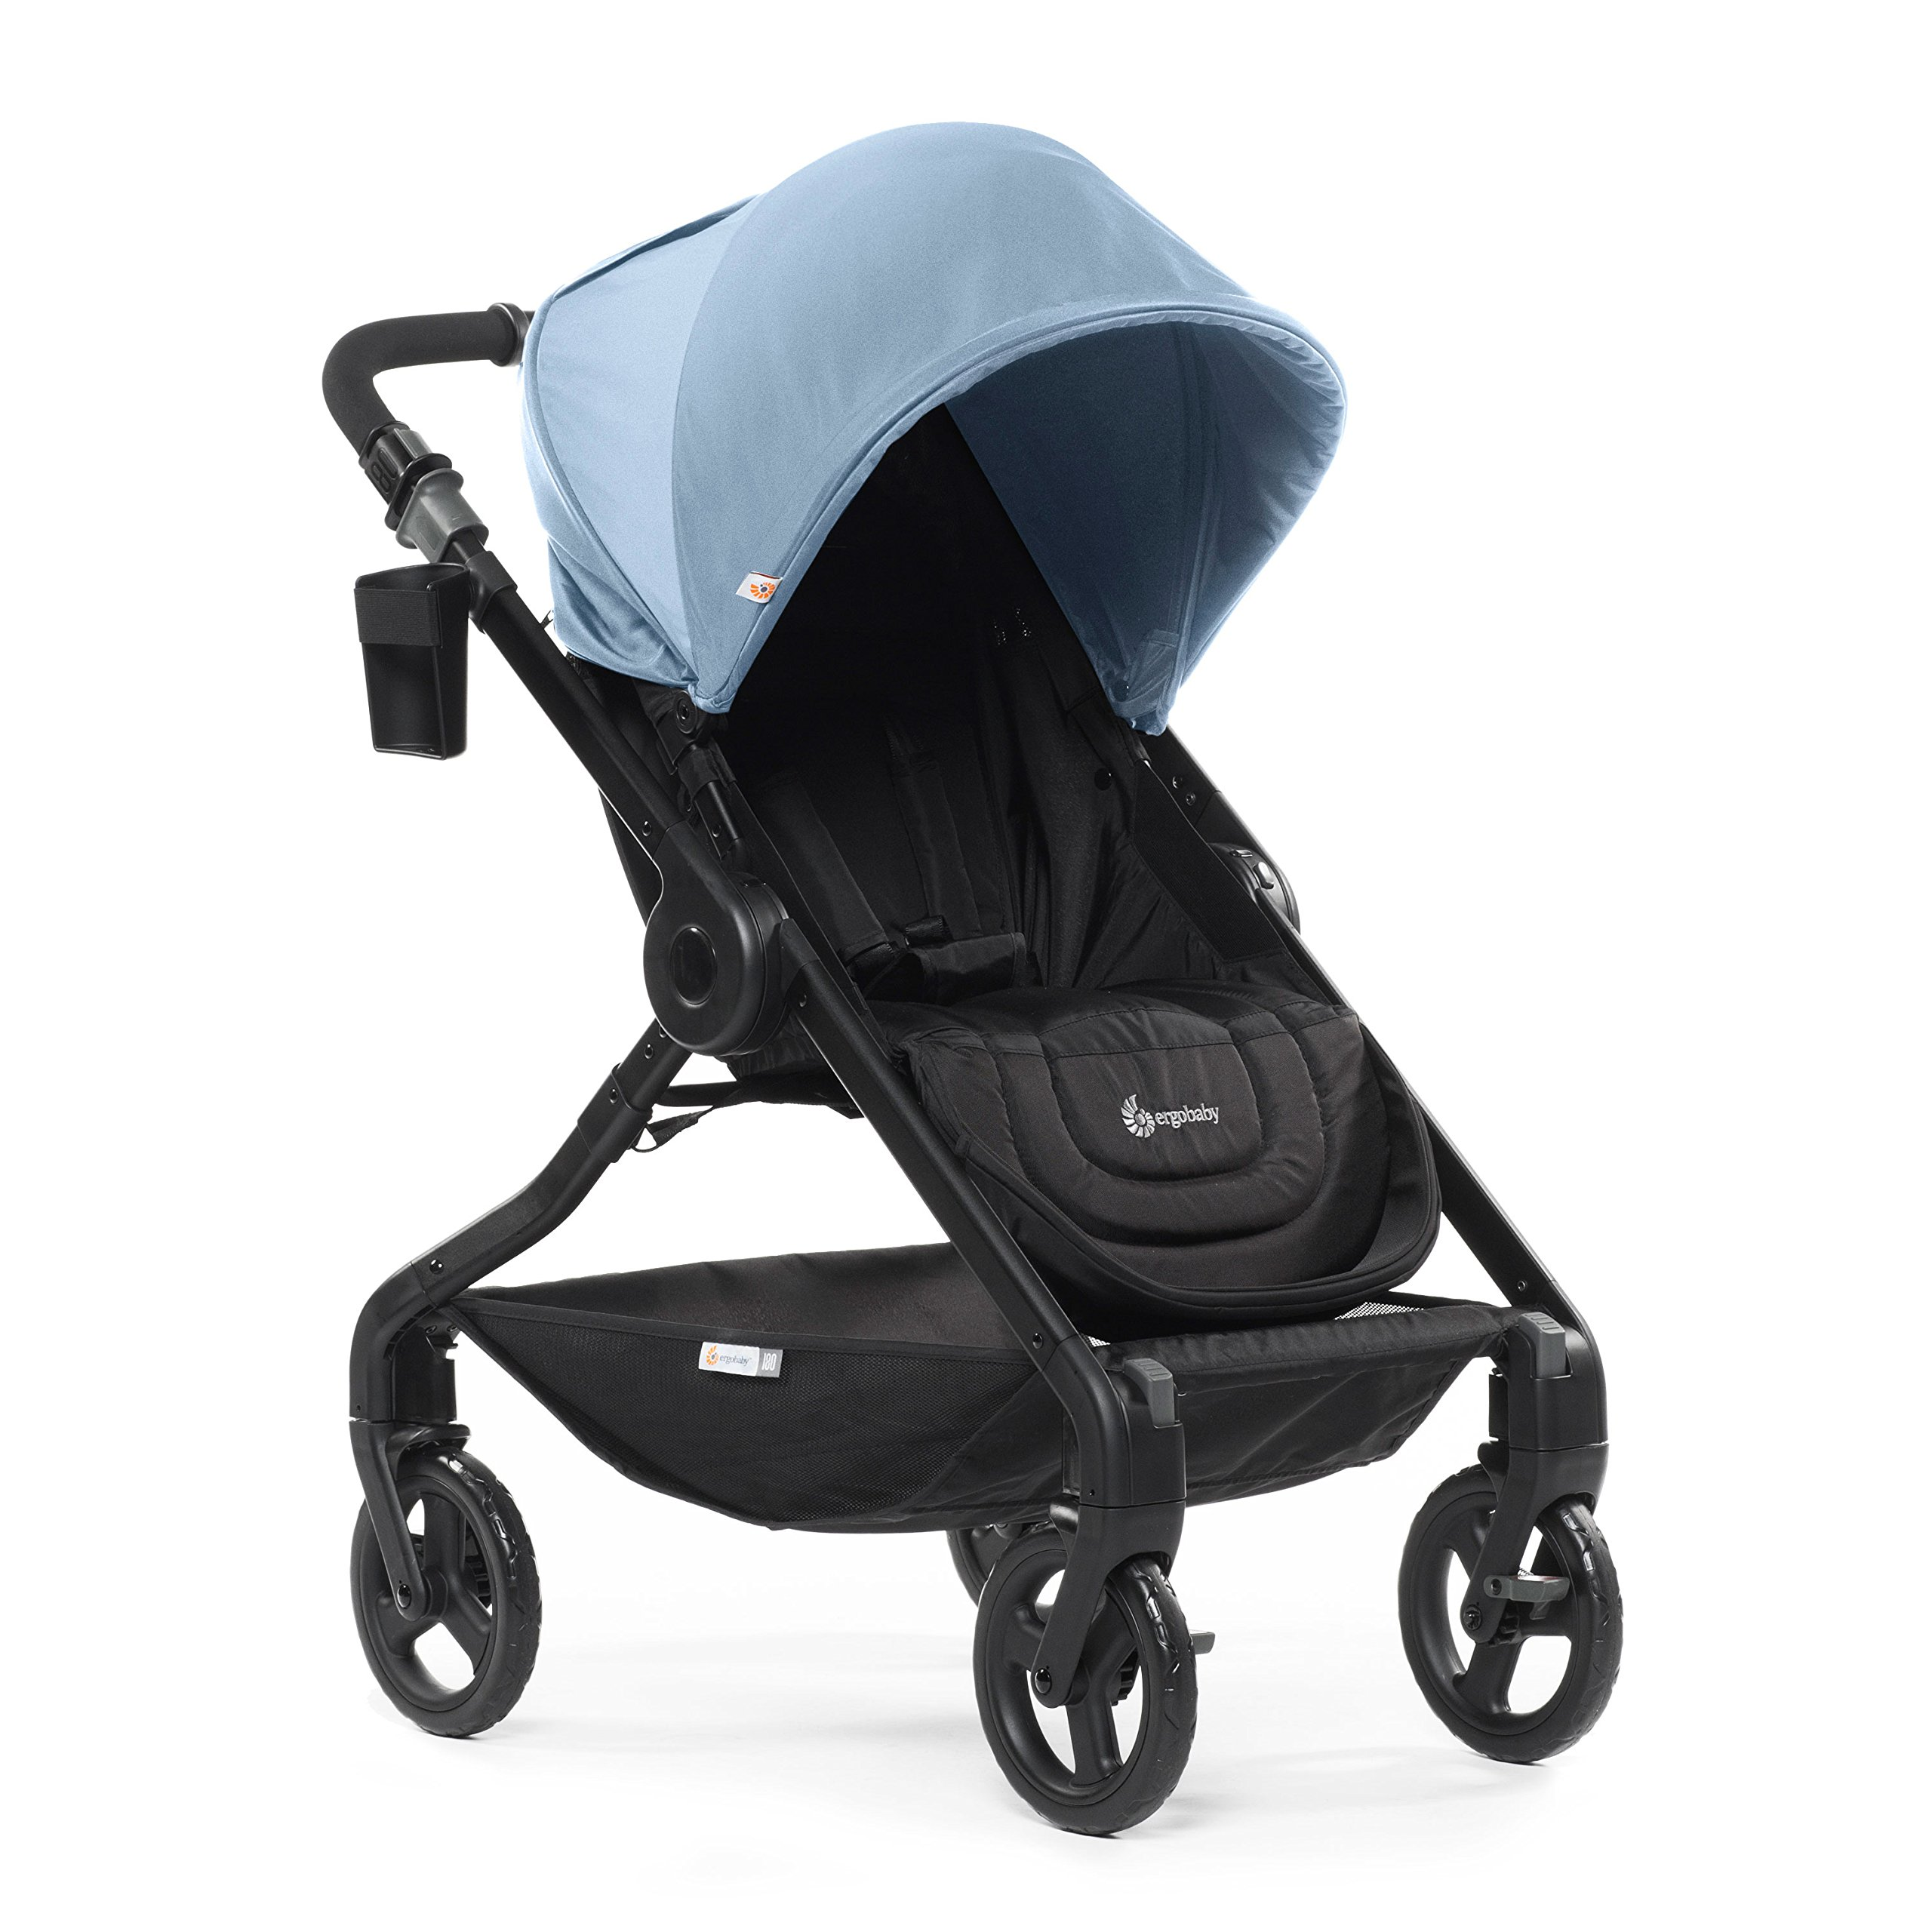 Amazon.com : Ergobaby Stroller, Travel System Ready, 180 Reversible with One-Hand Fold, Misty Blue : Baby